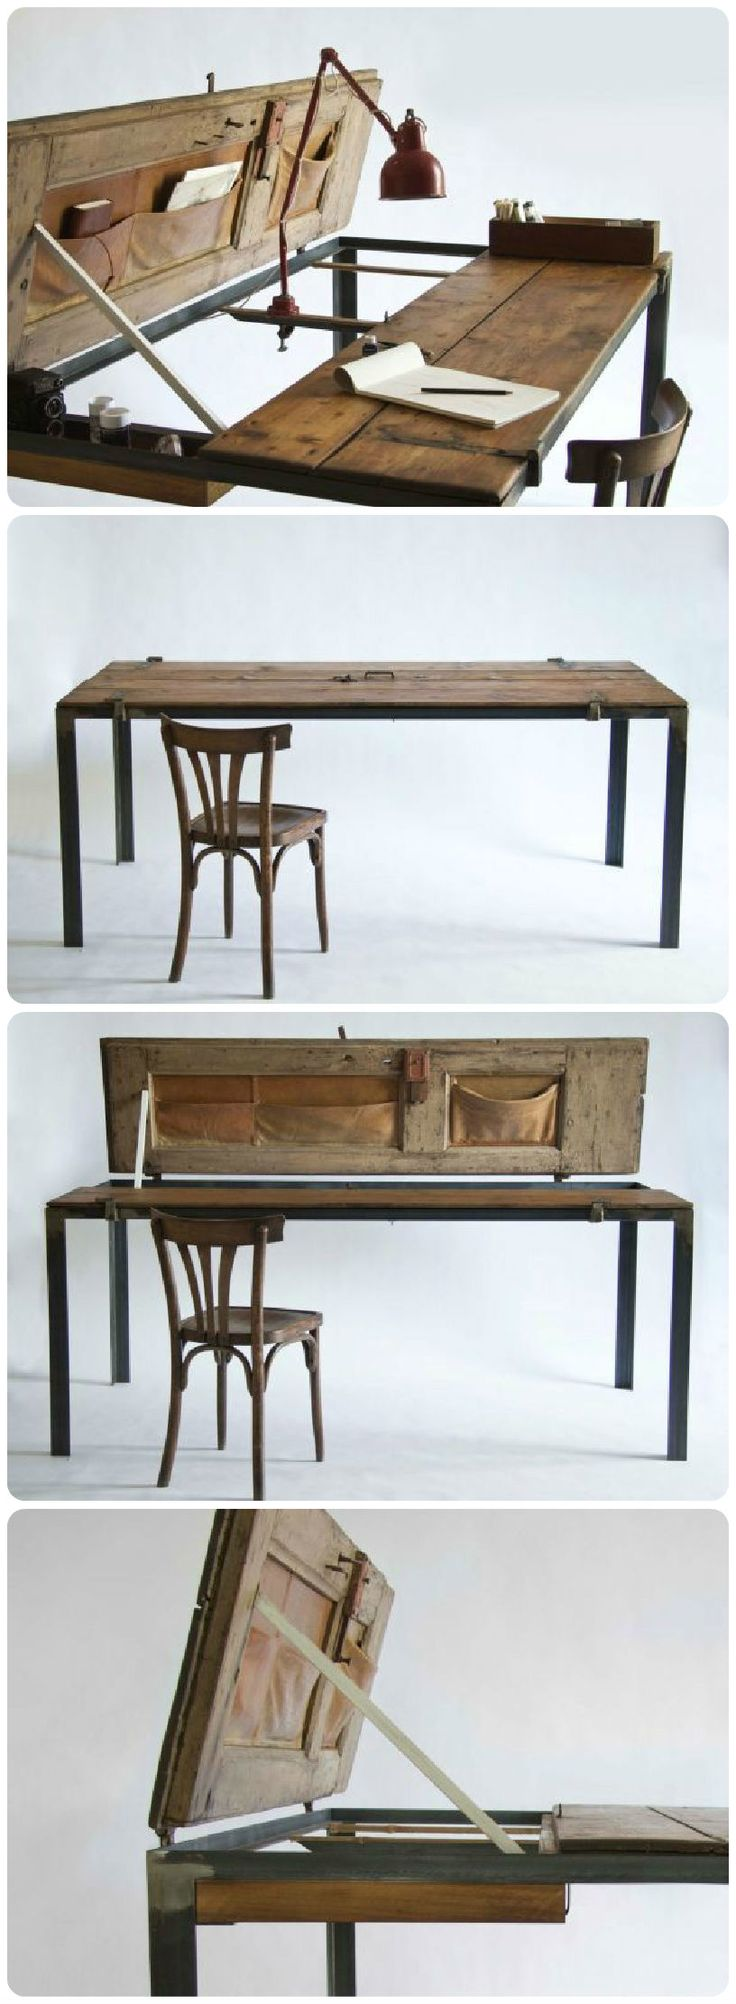 "Reclaimed wood furniture by Manoteca ""it's a  table built from an old exterior door"""